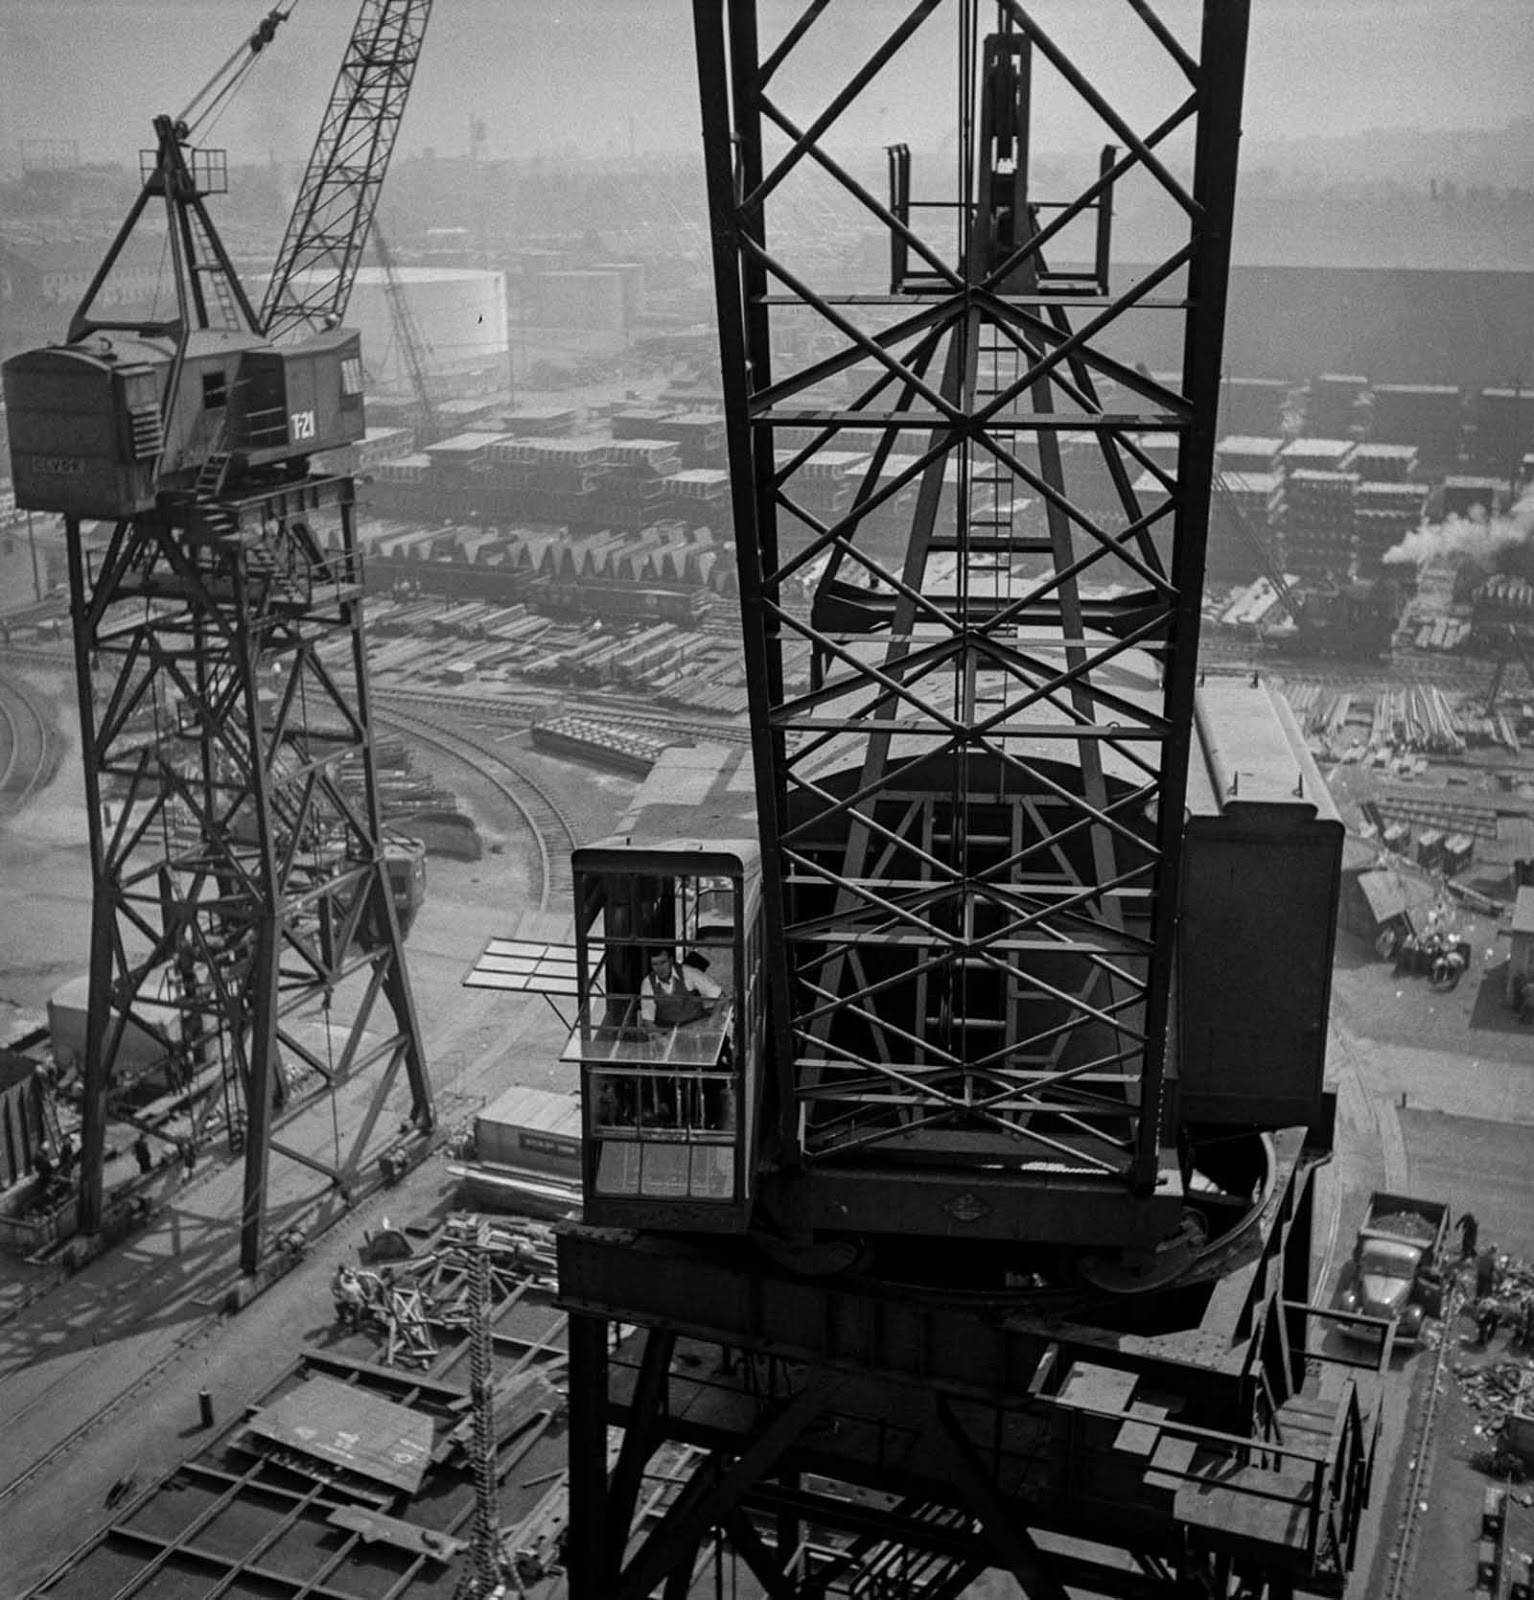 The crane and a view on the shipyard.